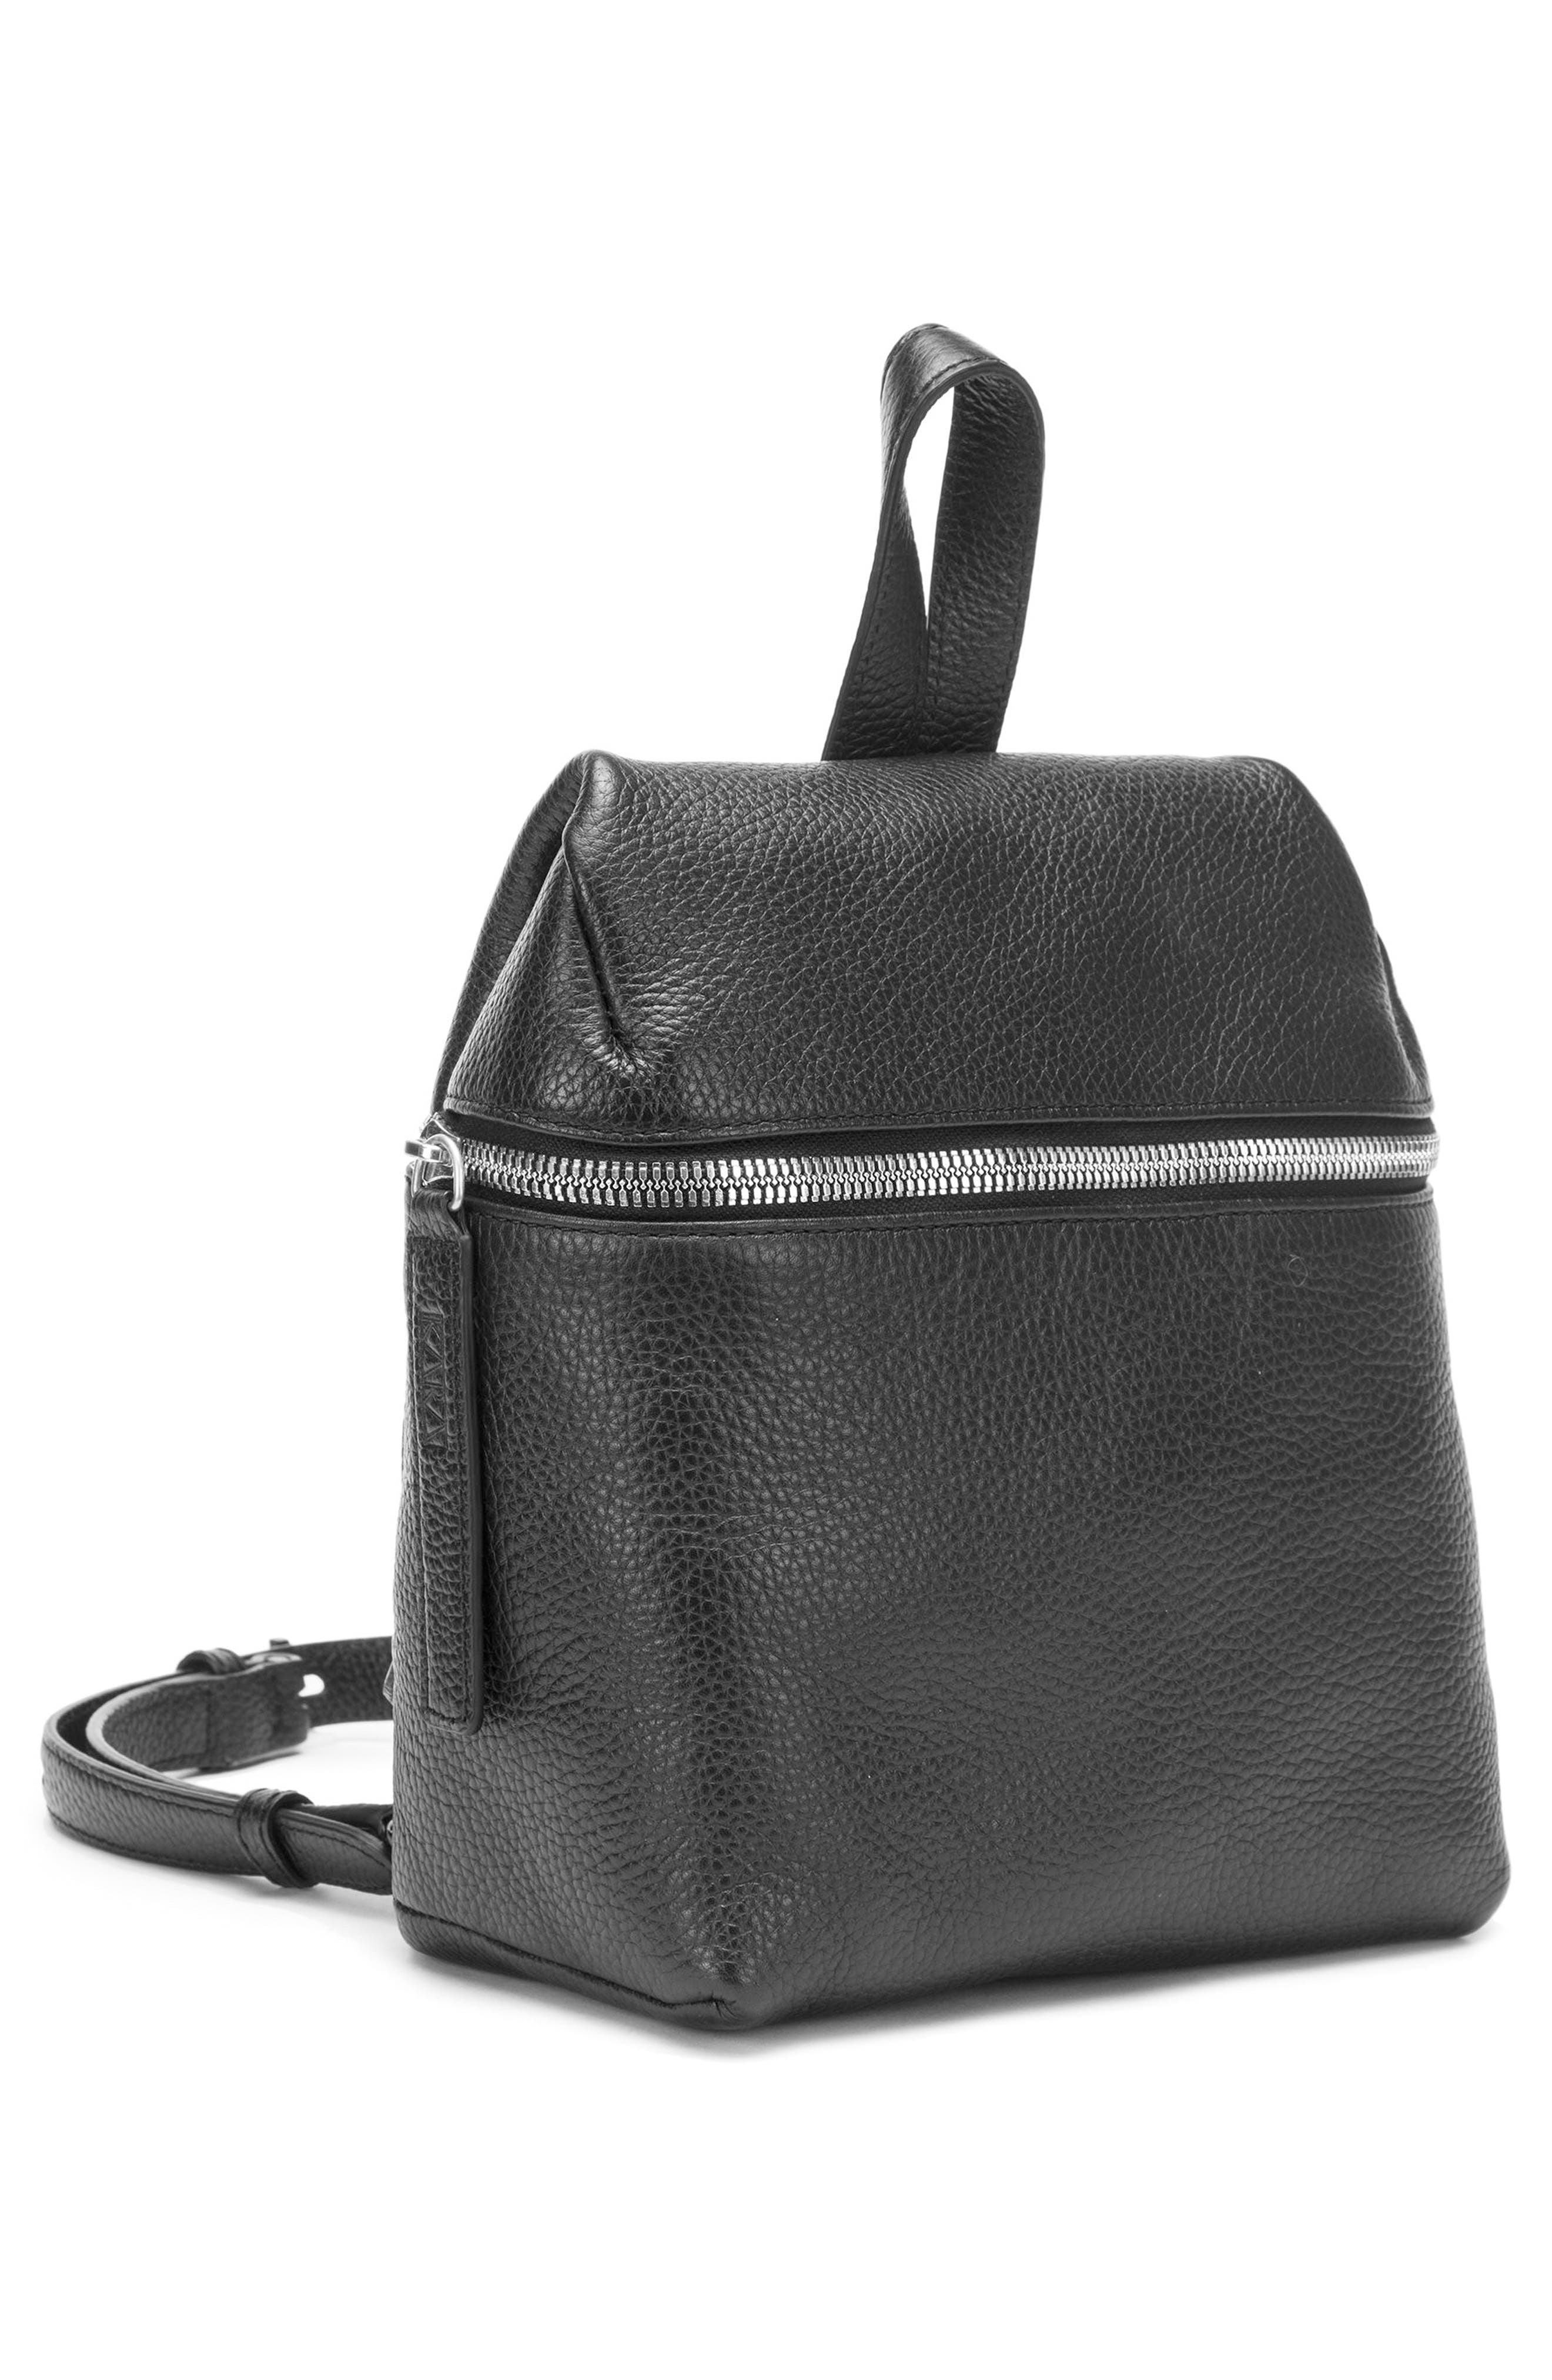 Alternate Image 3  - KARA Small Pebbled Leather Backpack